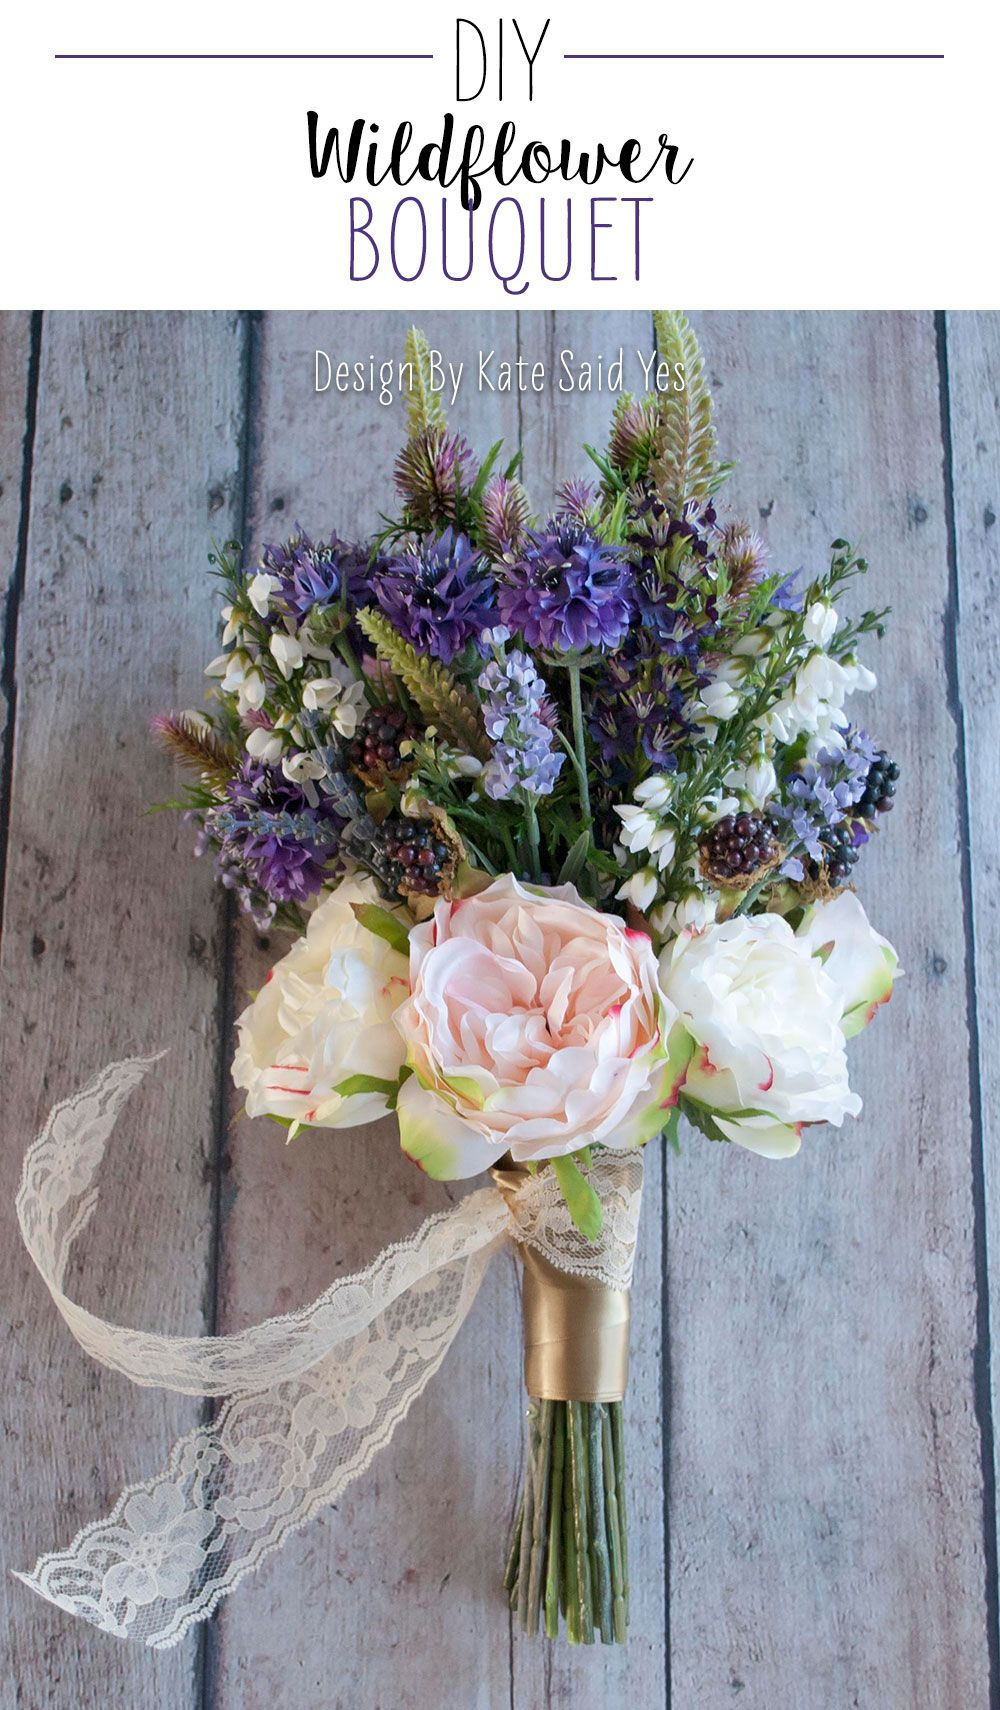 Learn How To Make This Beautiful Wildflower Bouquet With Premium